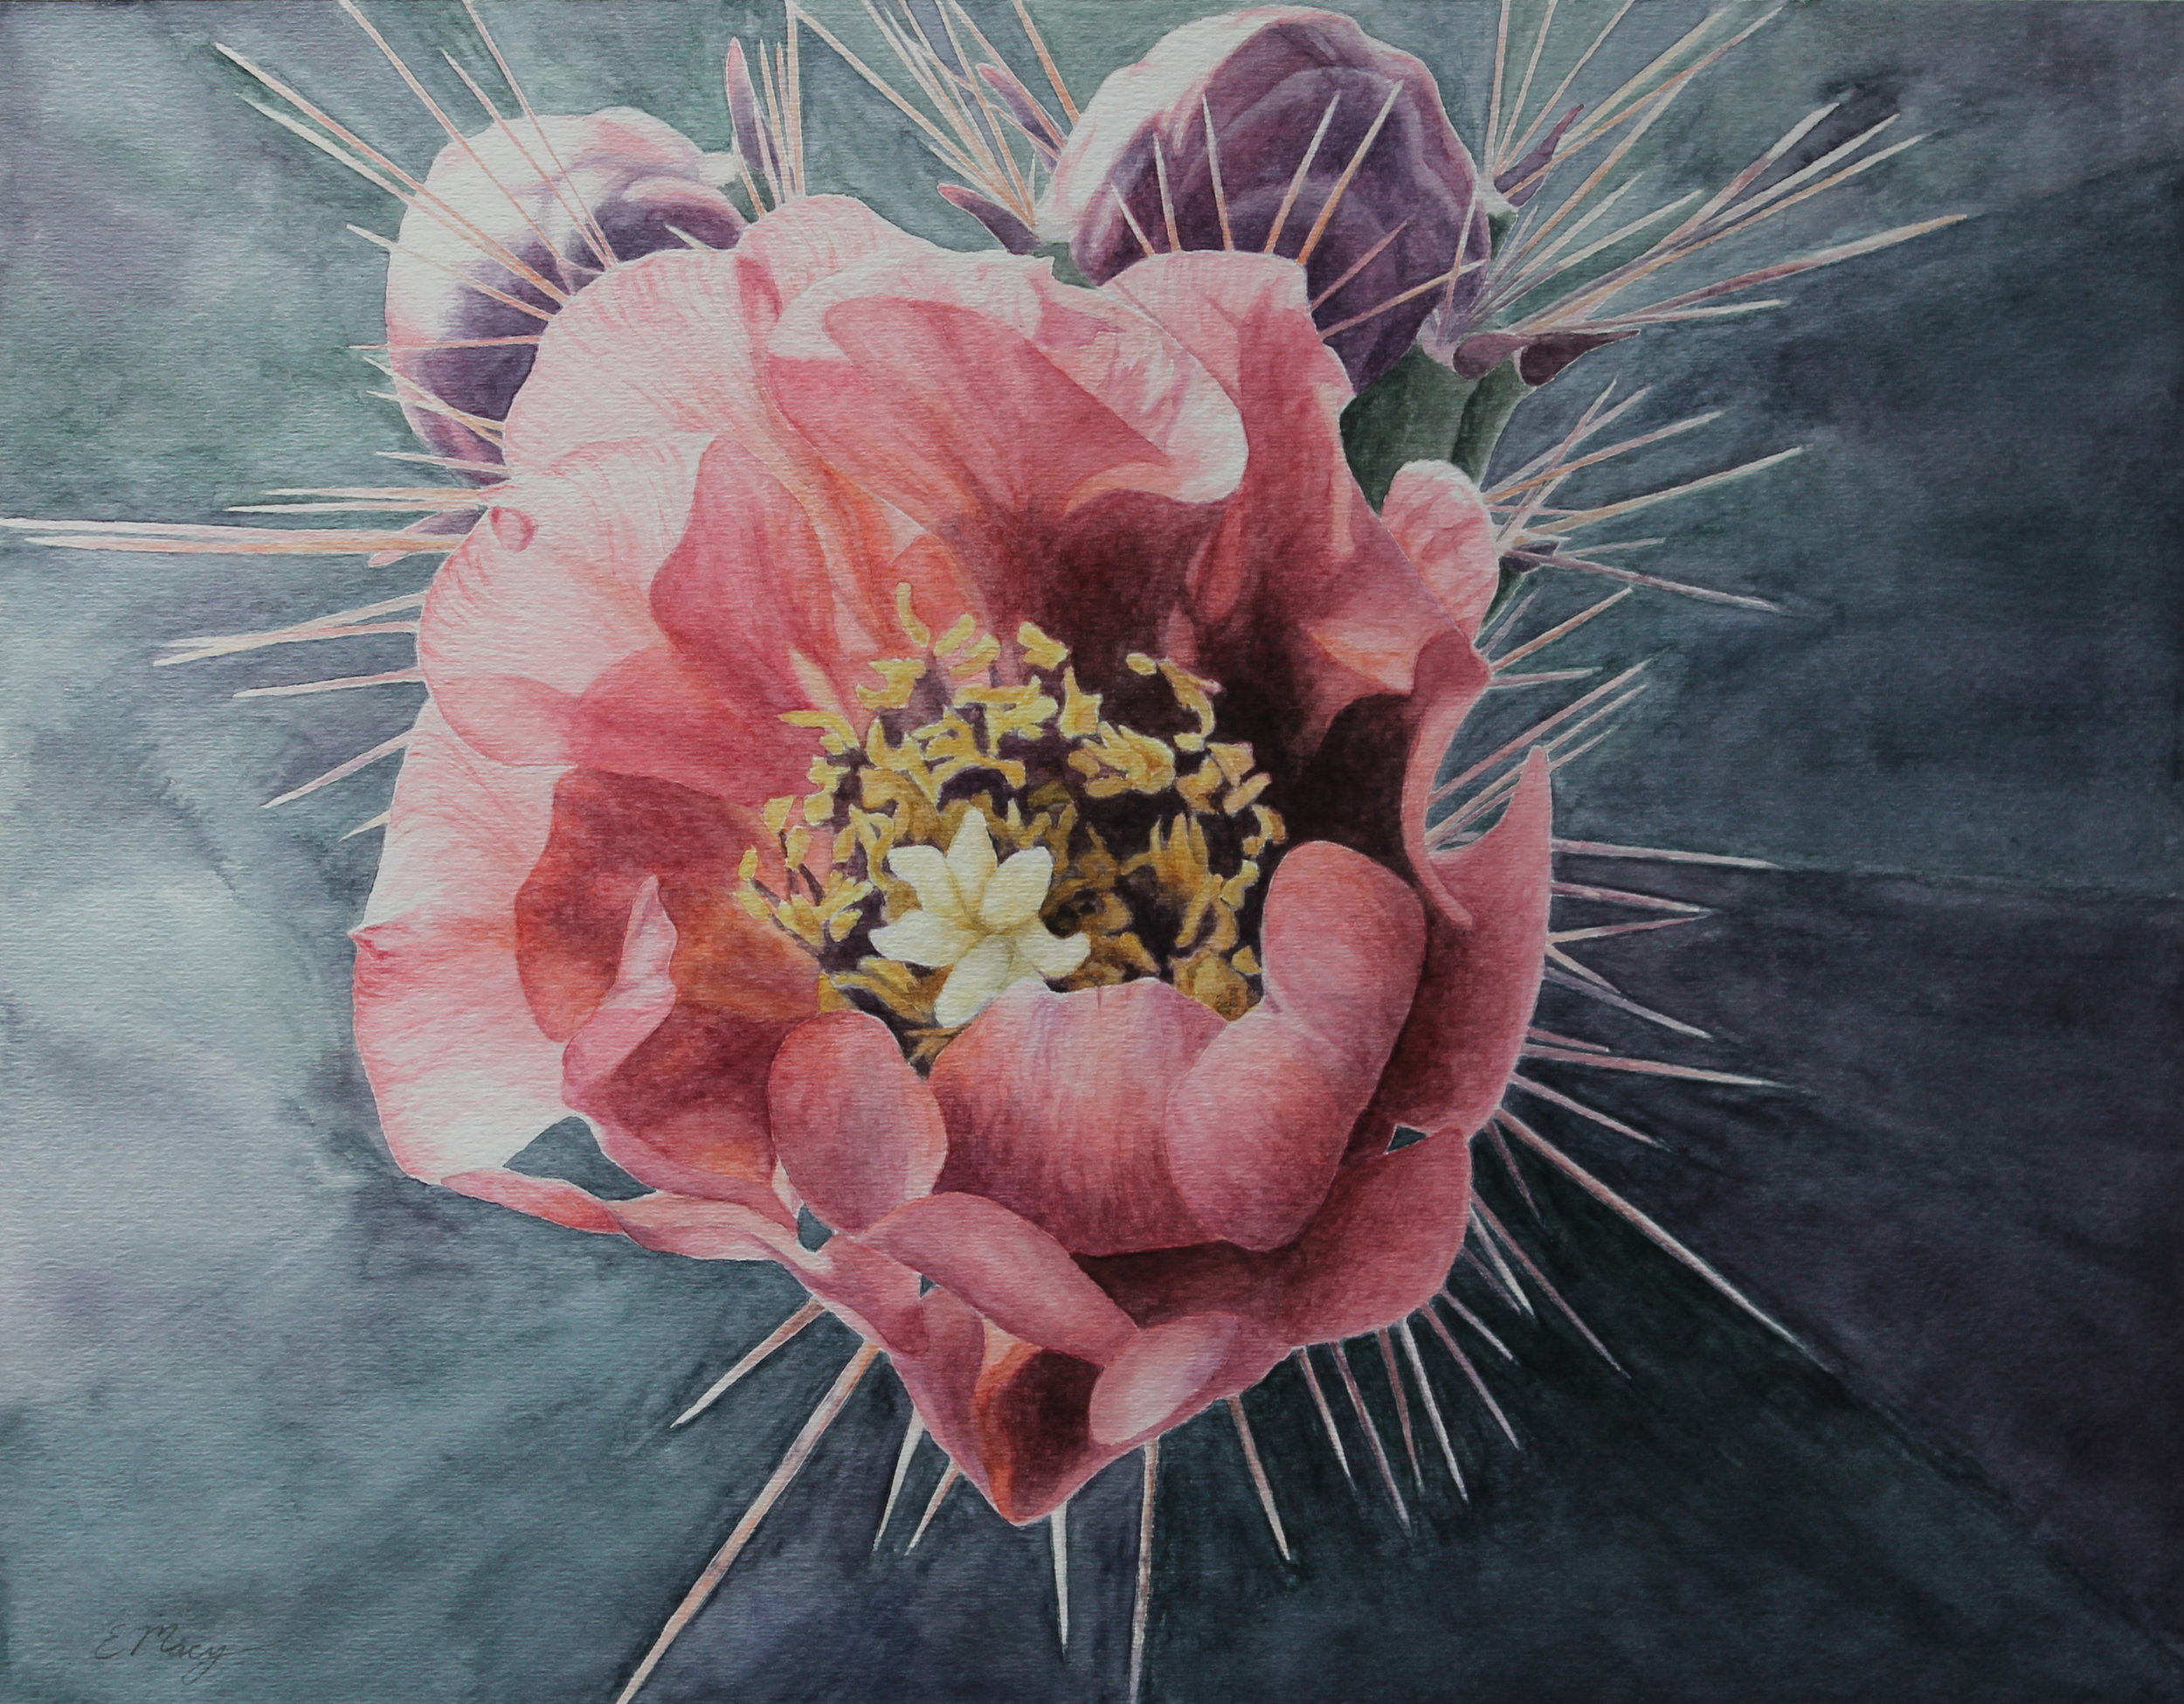 Unexpected Beauty is currently in Sacramento at the State Capitol as a part of the California Contemporary Art Collection exhibit. It will be on display for the next eighteen months.